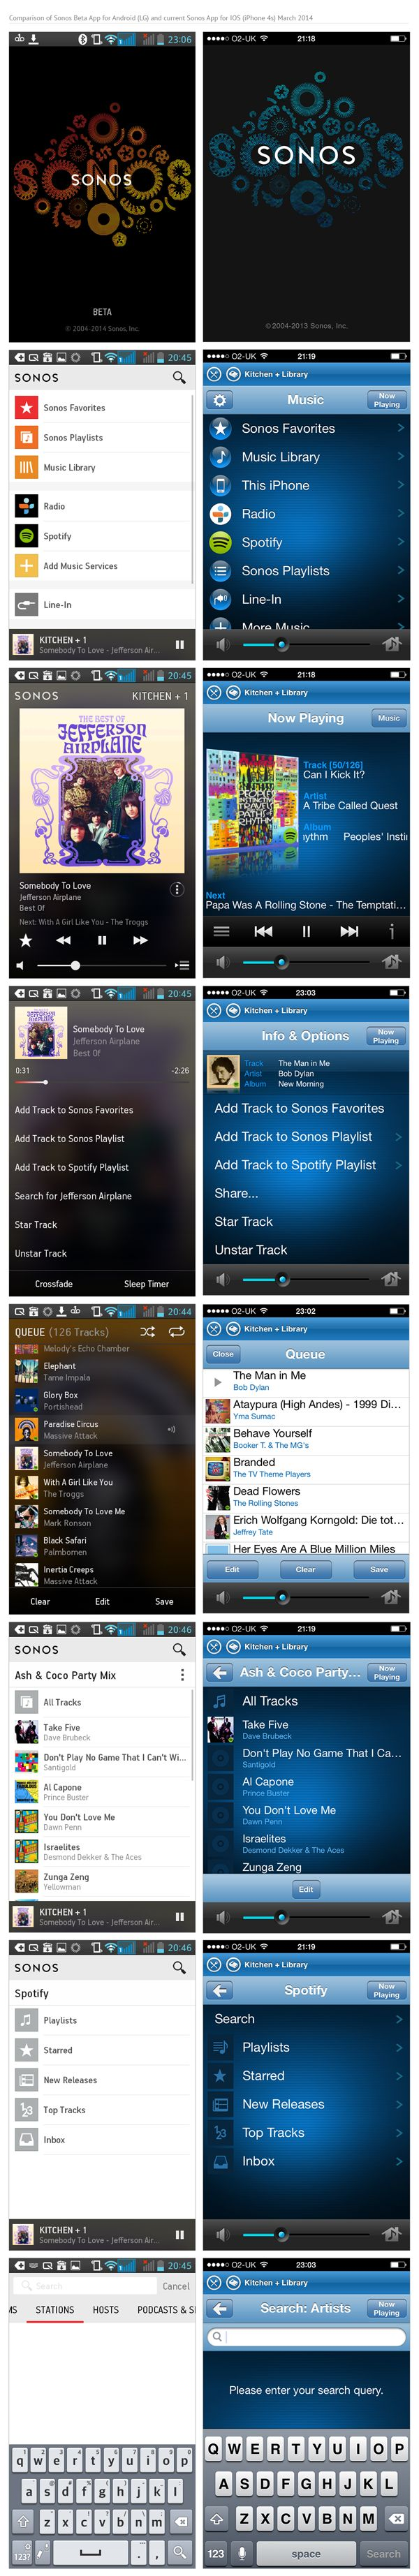 Comparison of Sonos Beta App for Android (LG) and current Sonos App for IOS (iPhone 4s) March 2014